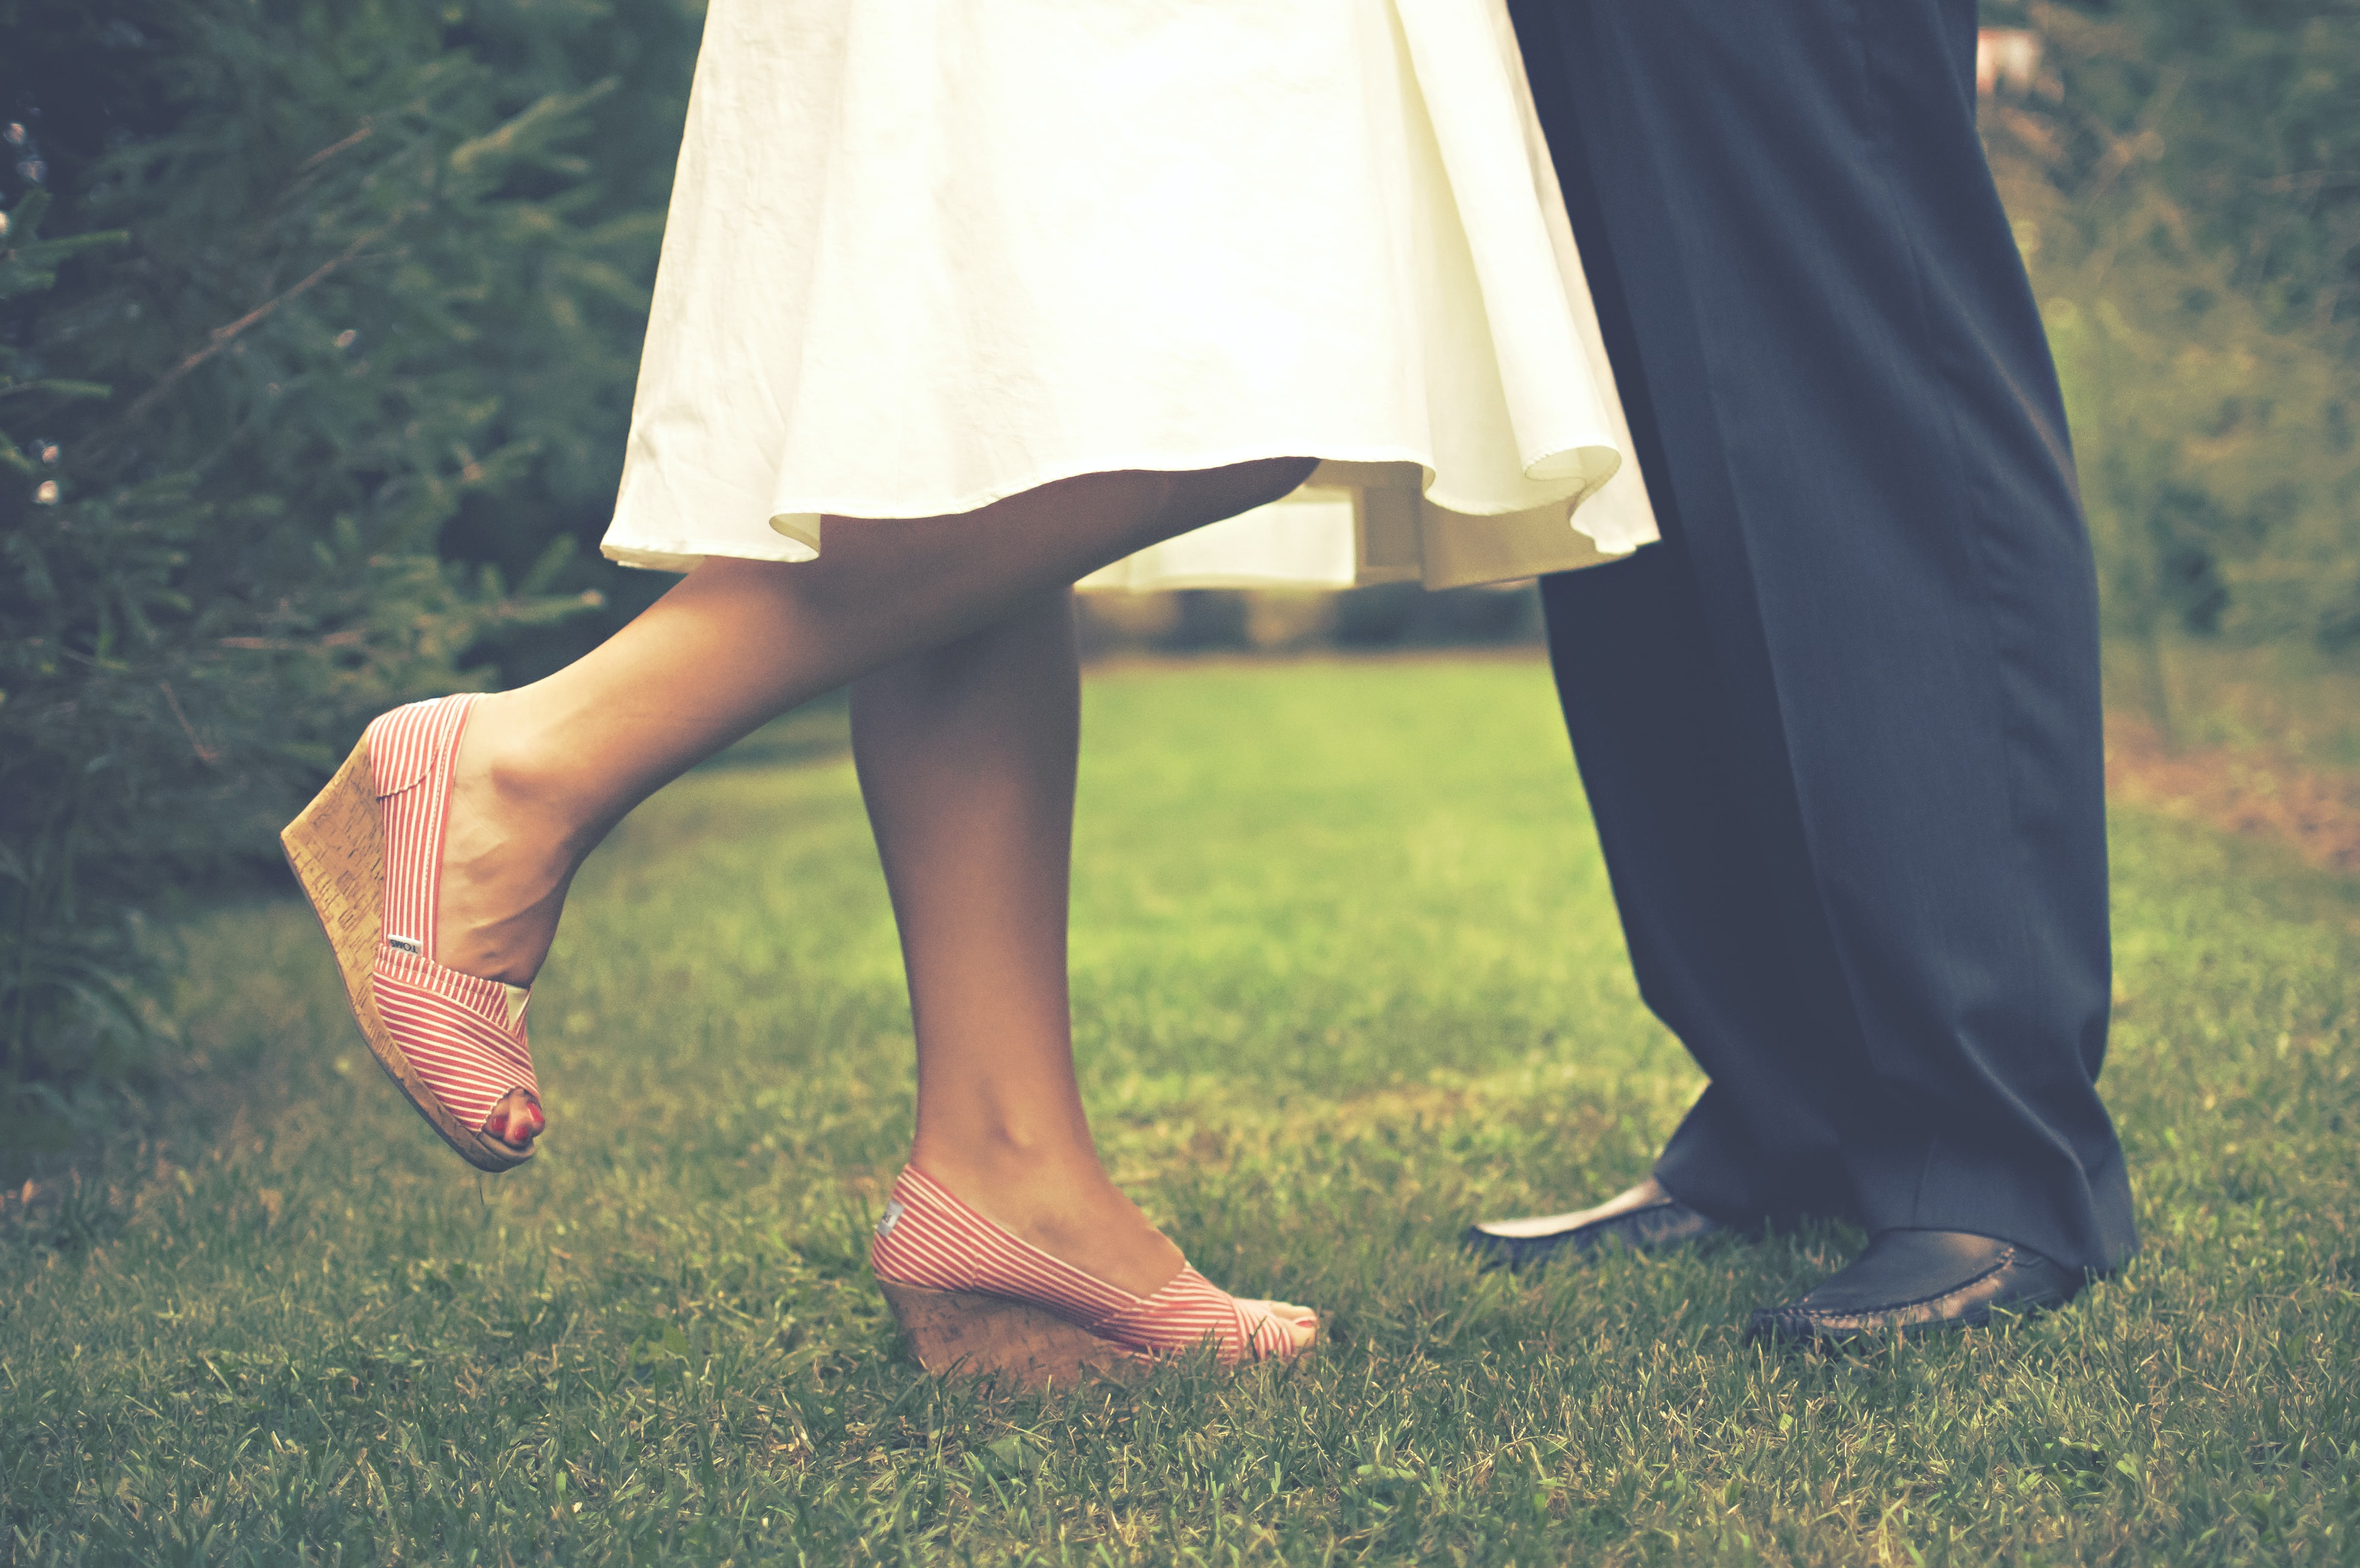 A bride and groom's legs in a short, white dress and pink wedges and black suit